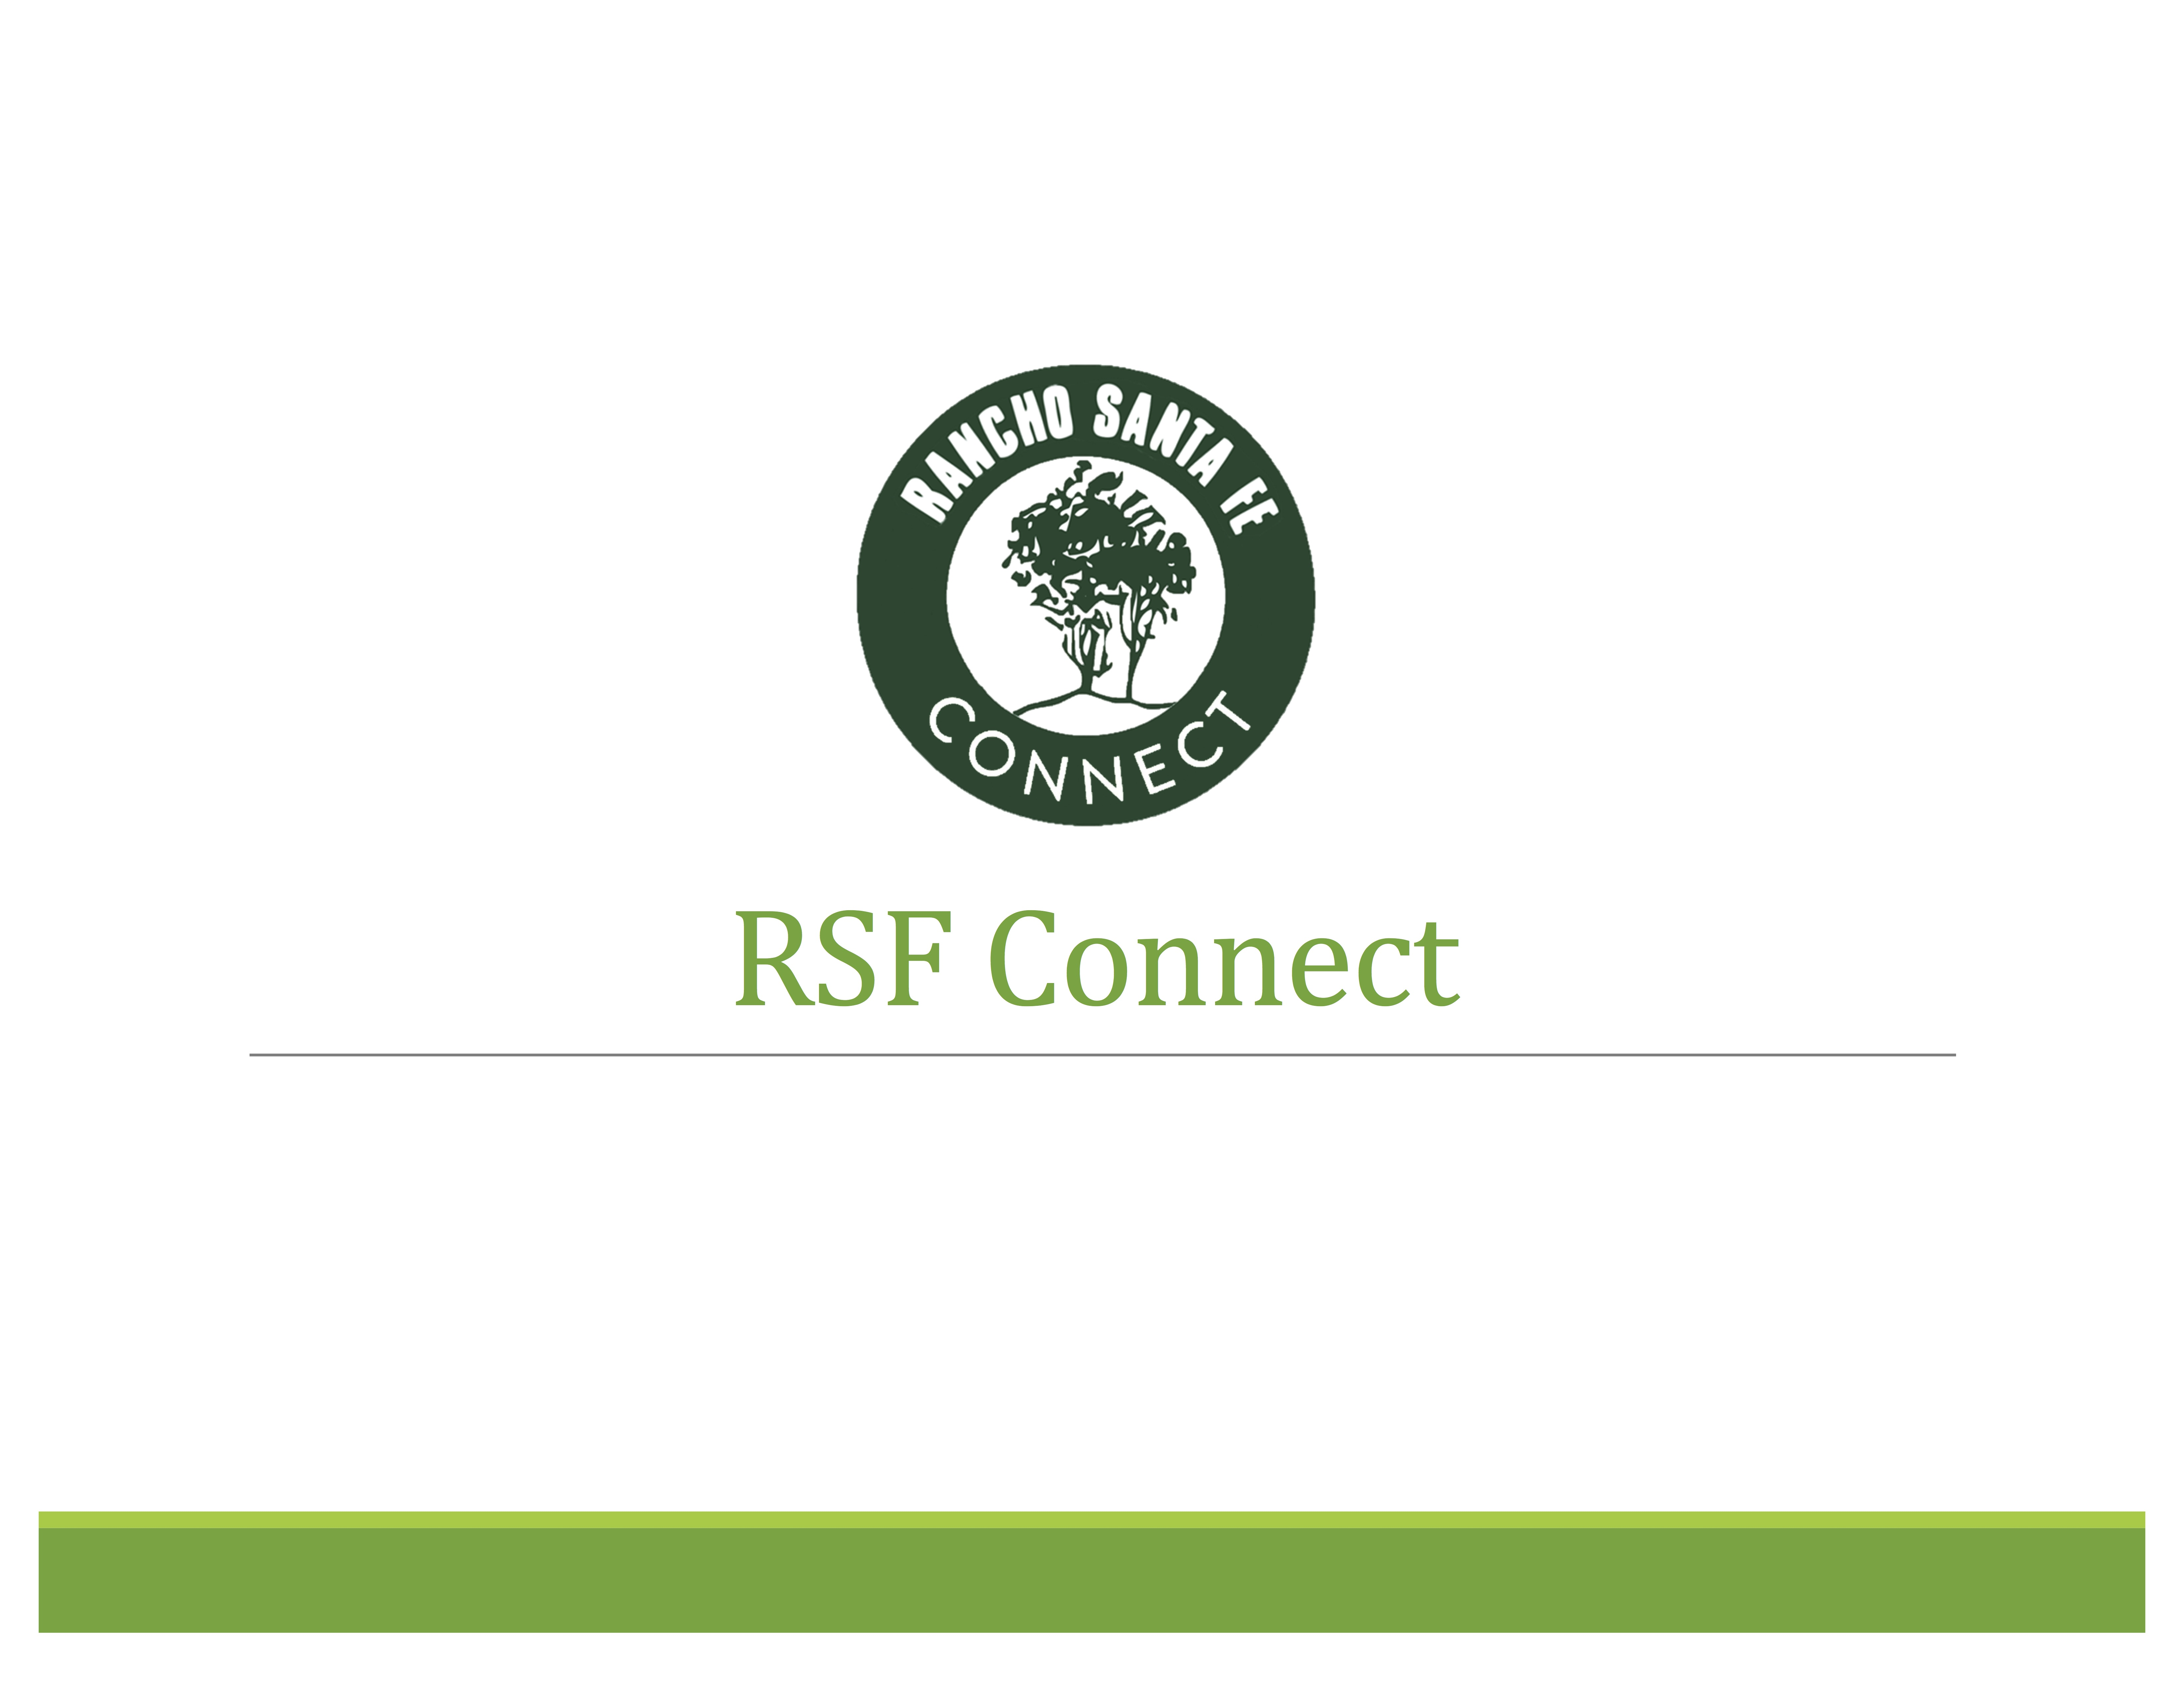 Annual Meeting Presentation on RSF Connect